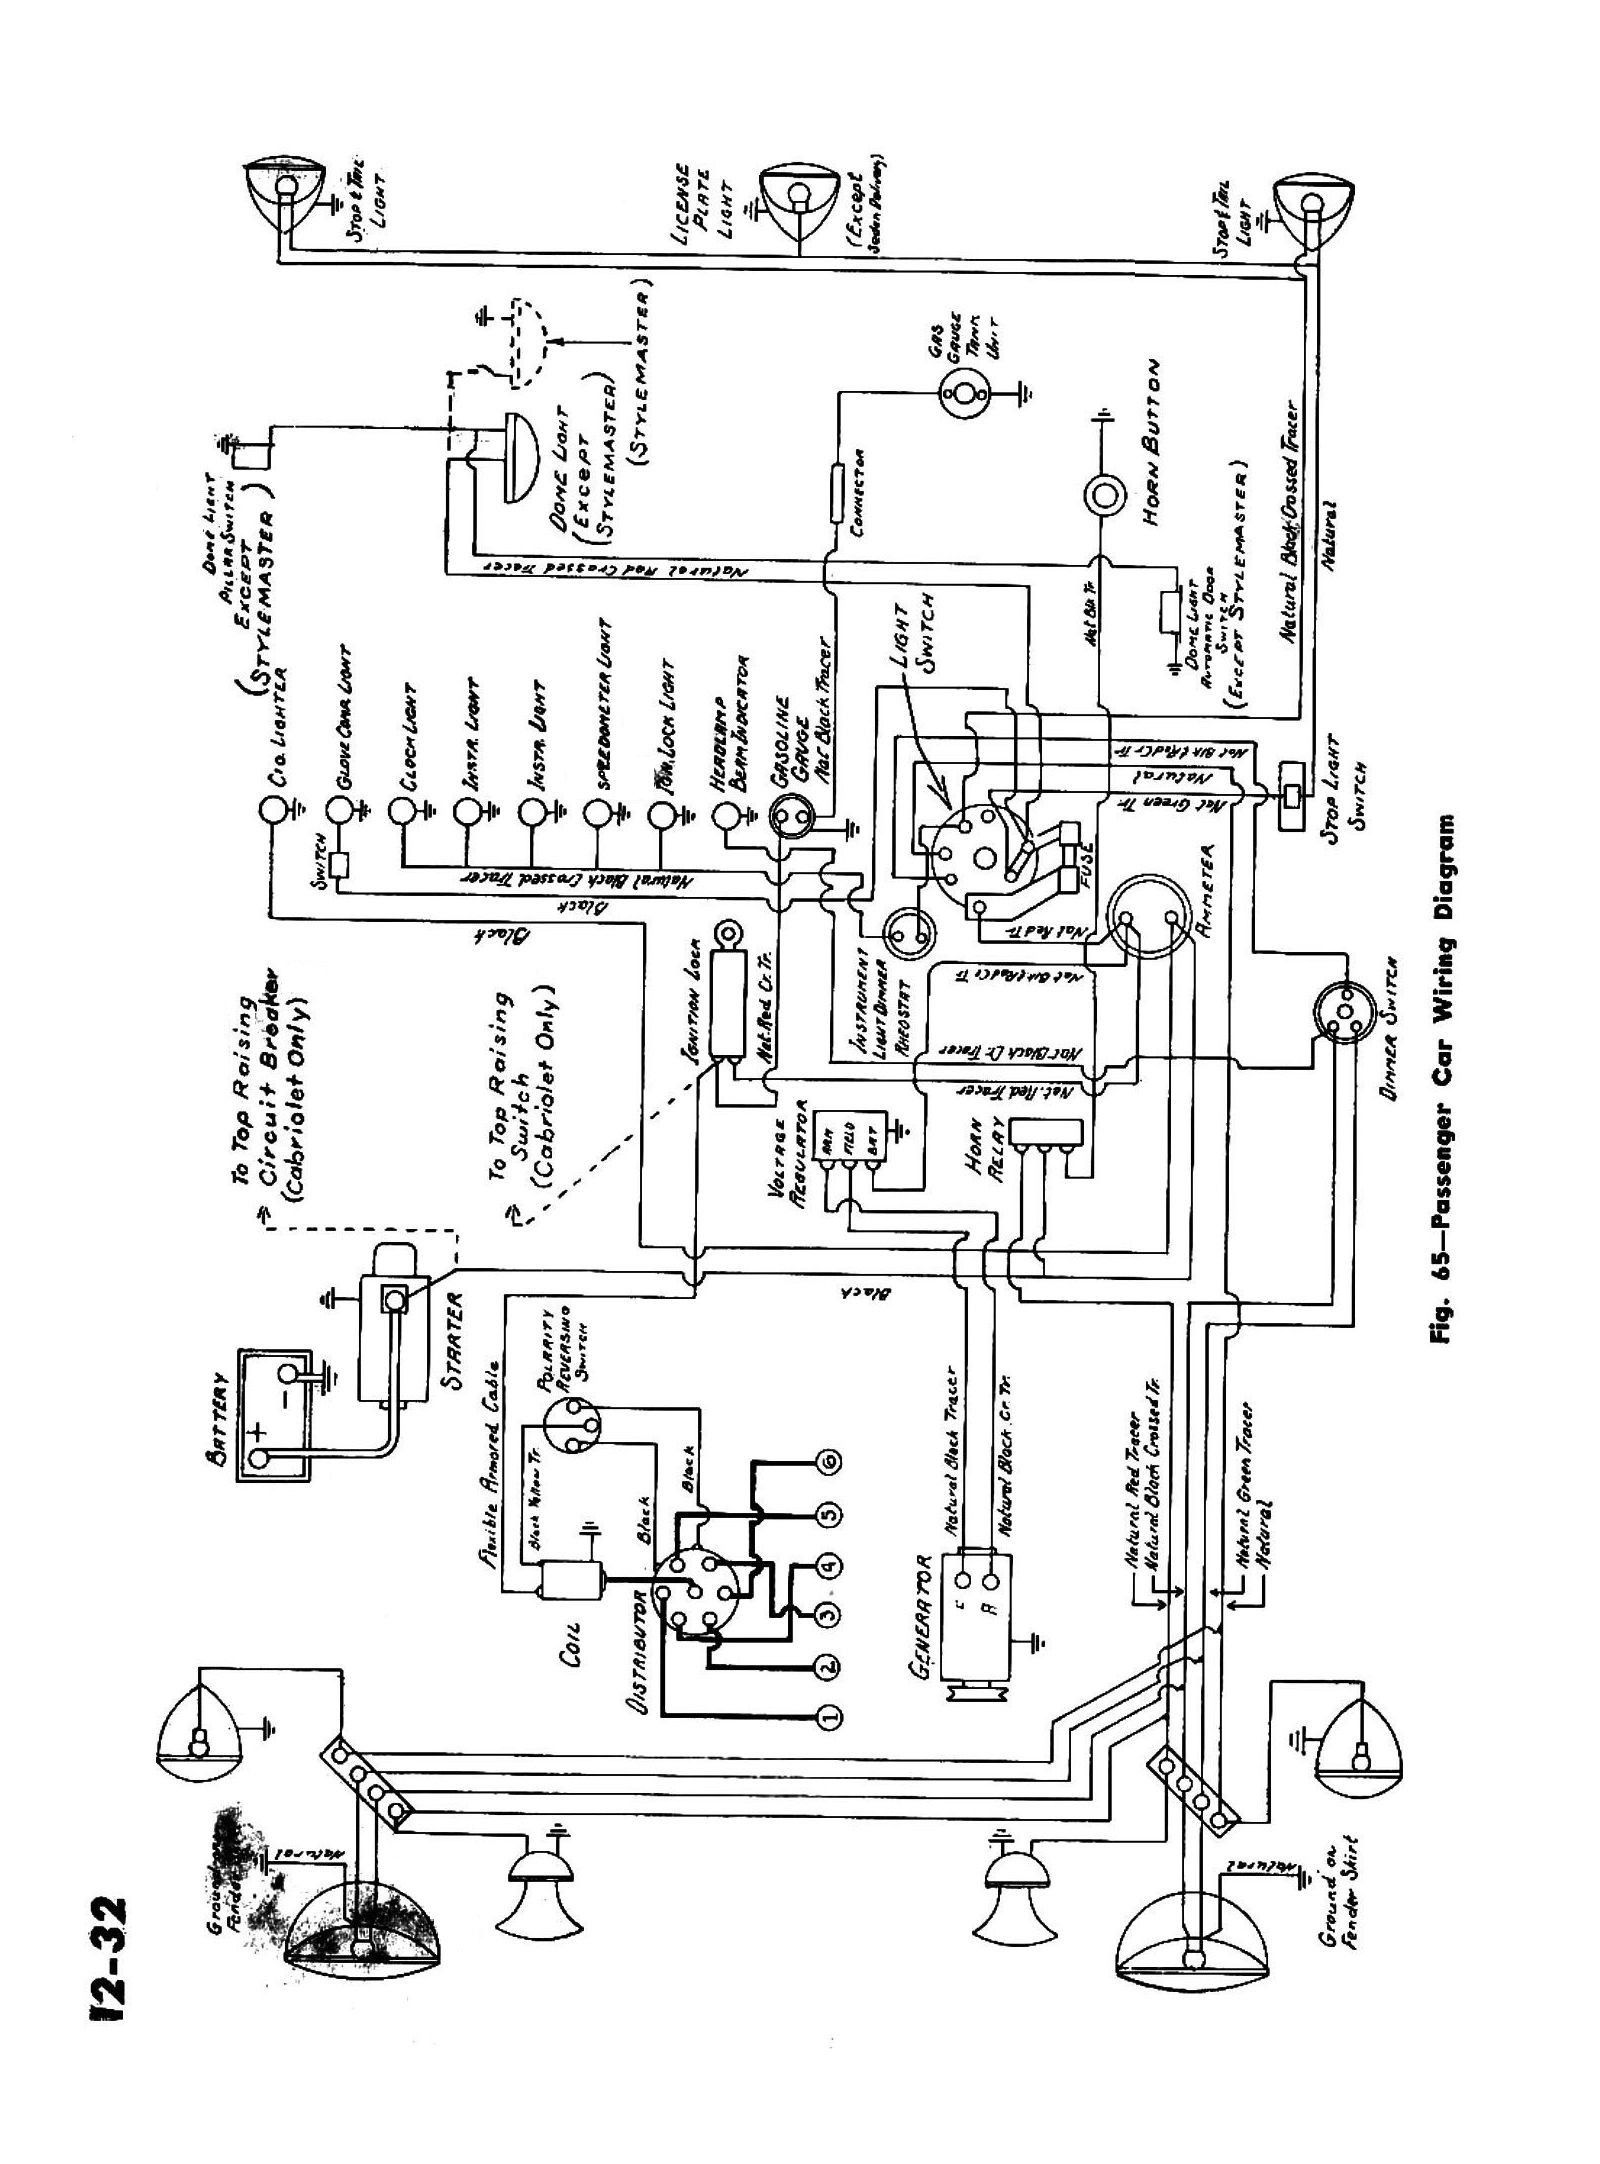 Unique Wiring Diagram For Automotive